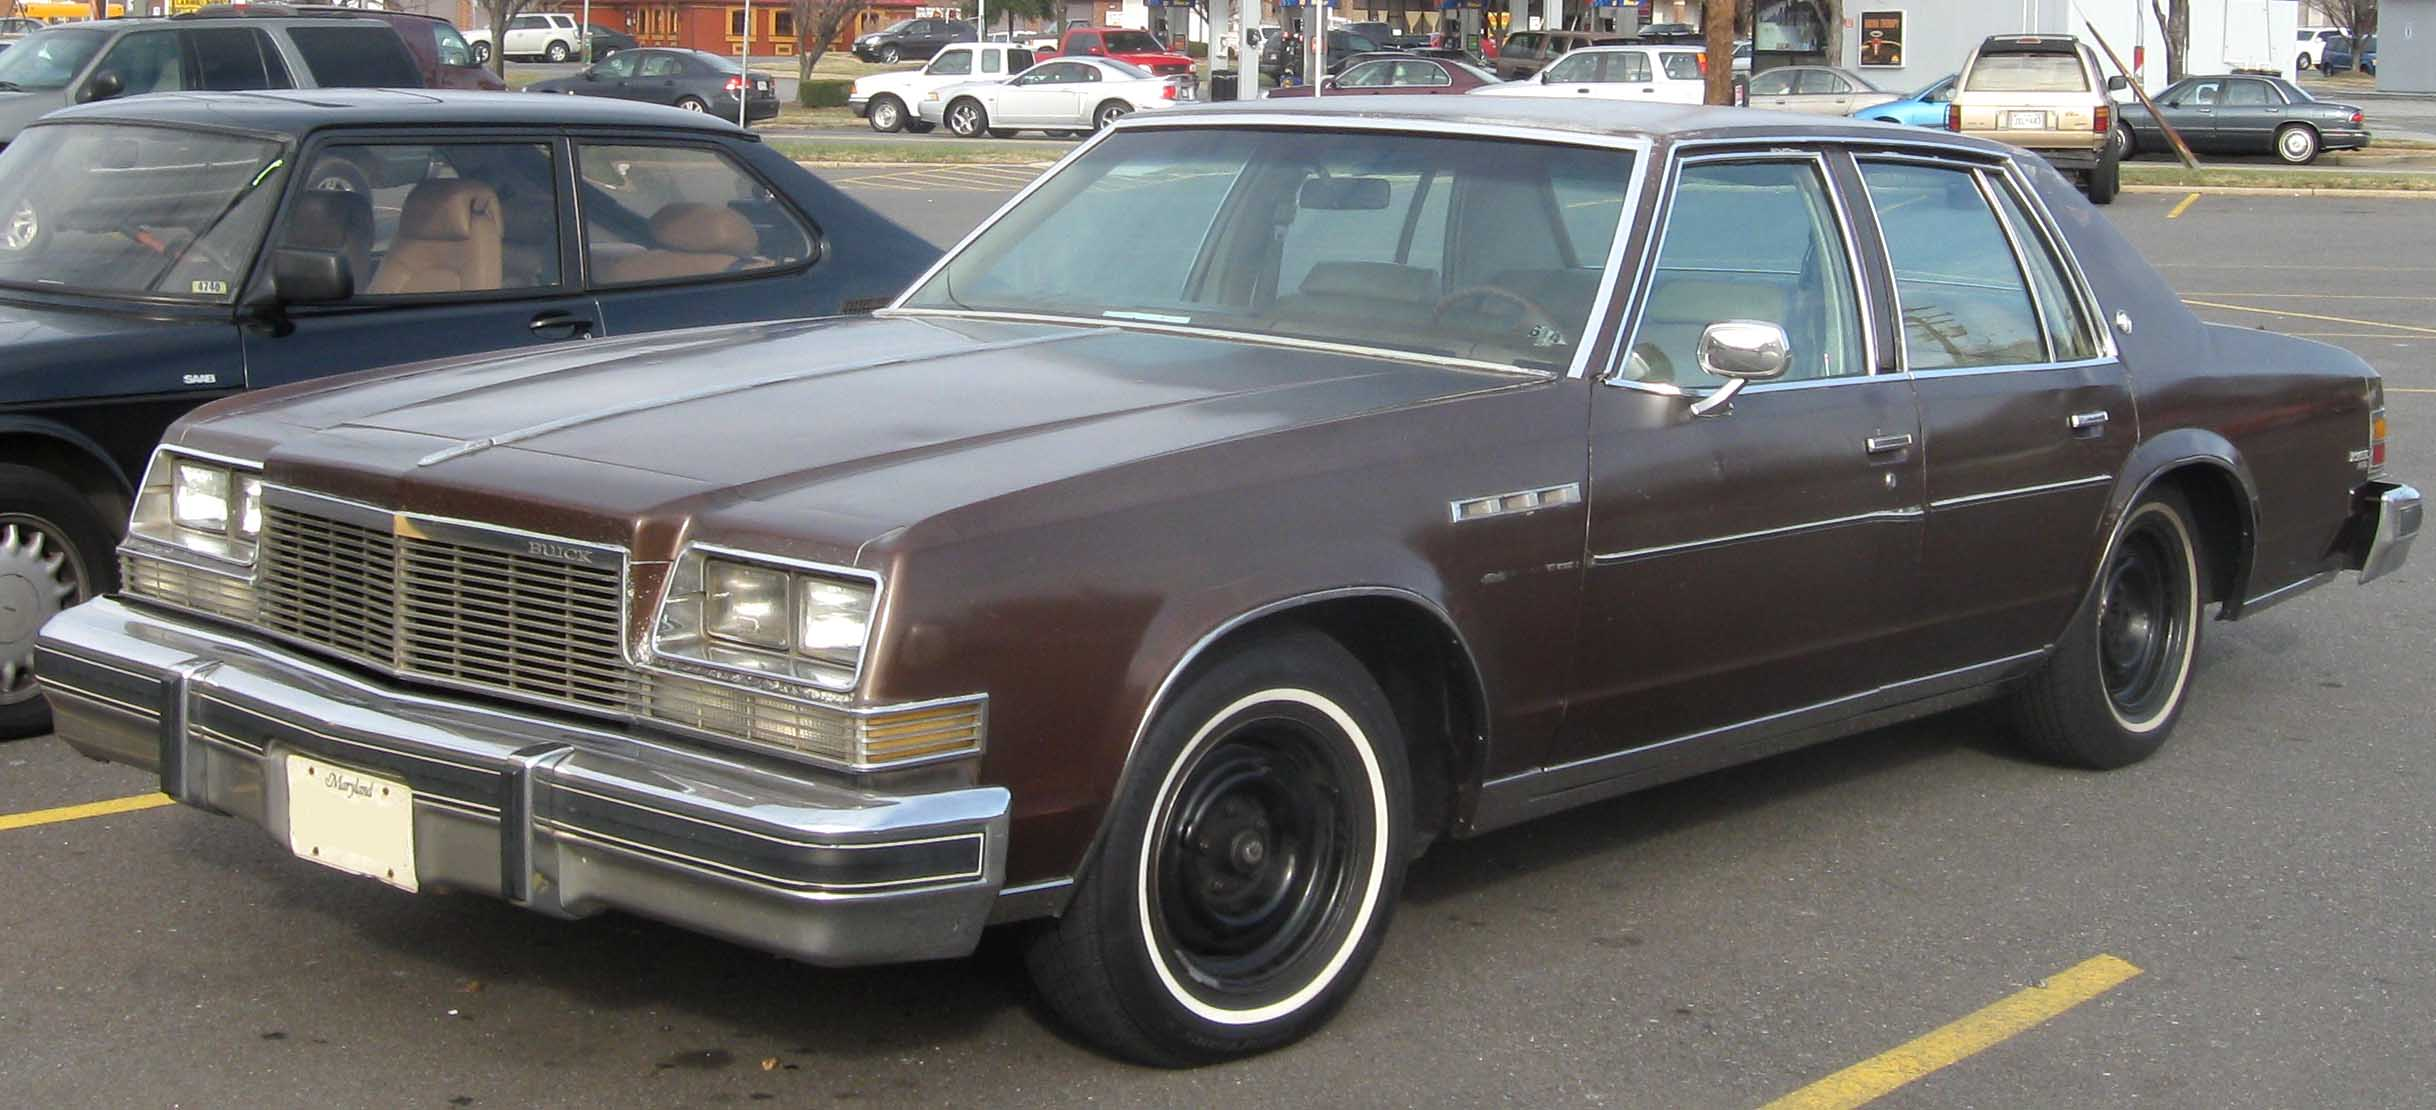 Pictures of buick le sabre #3